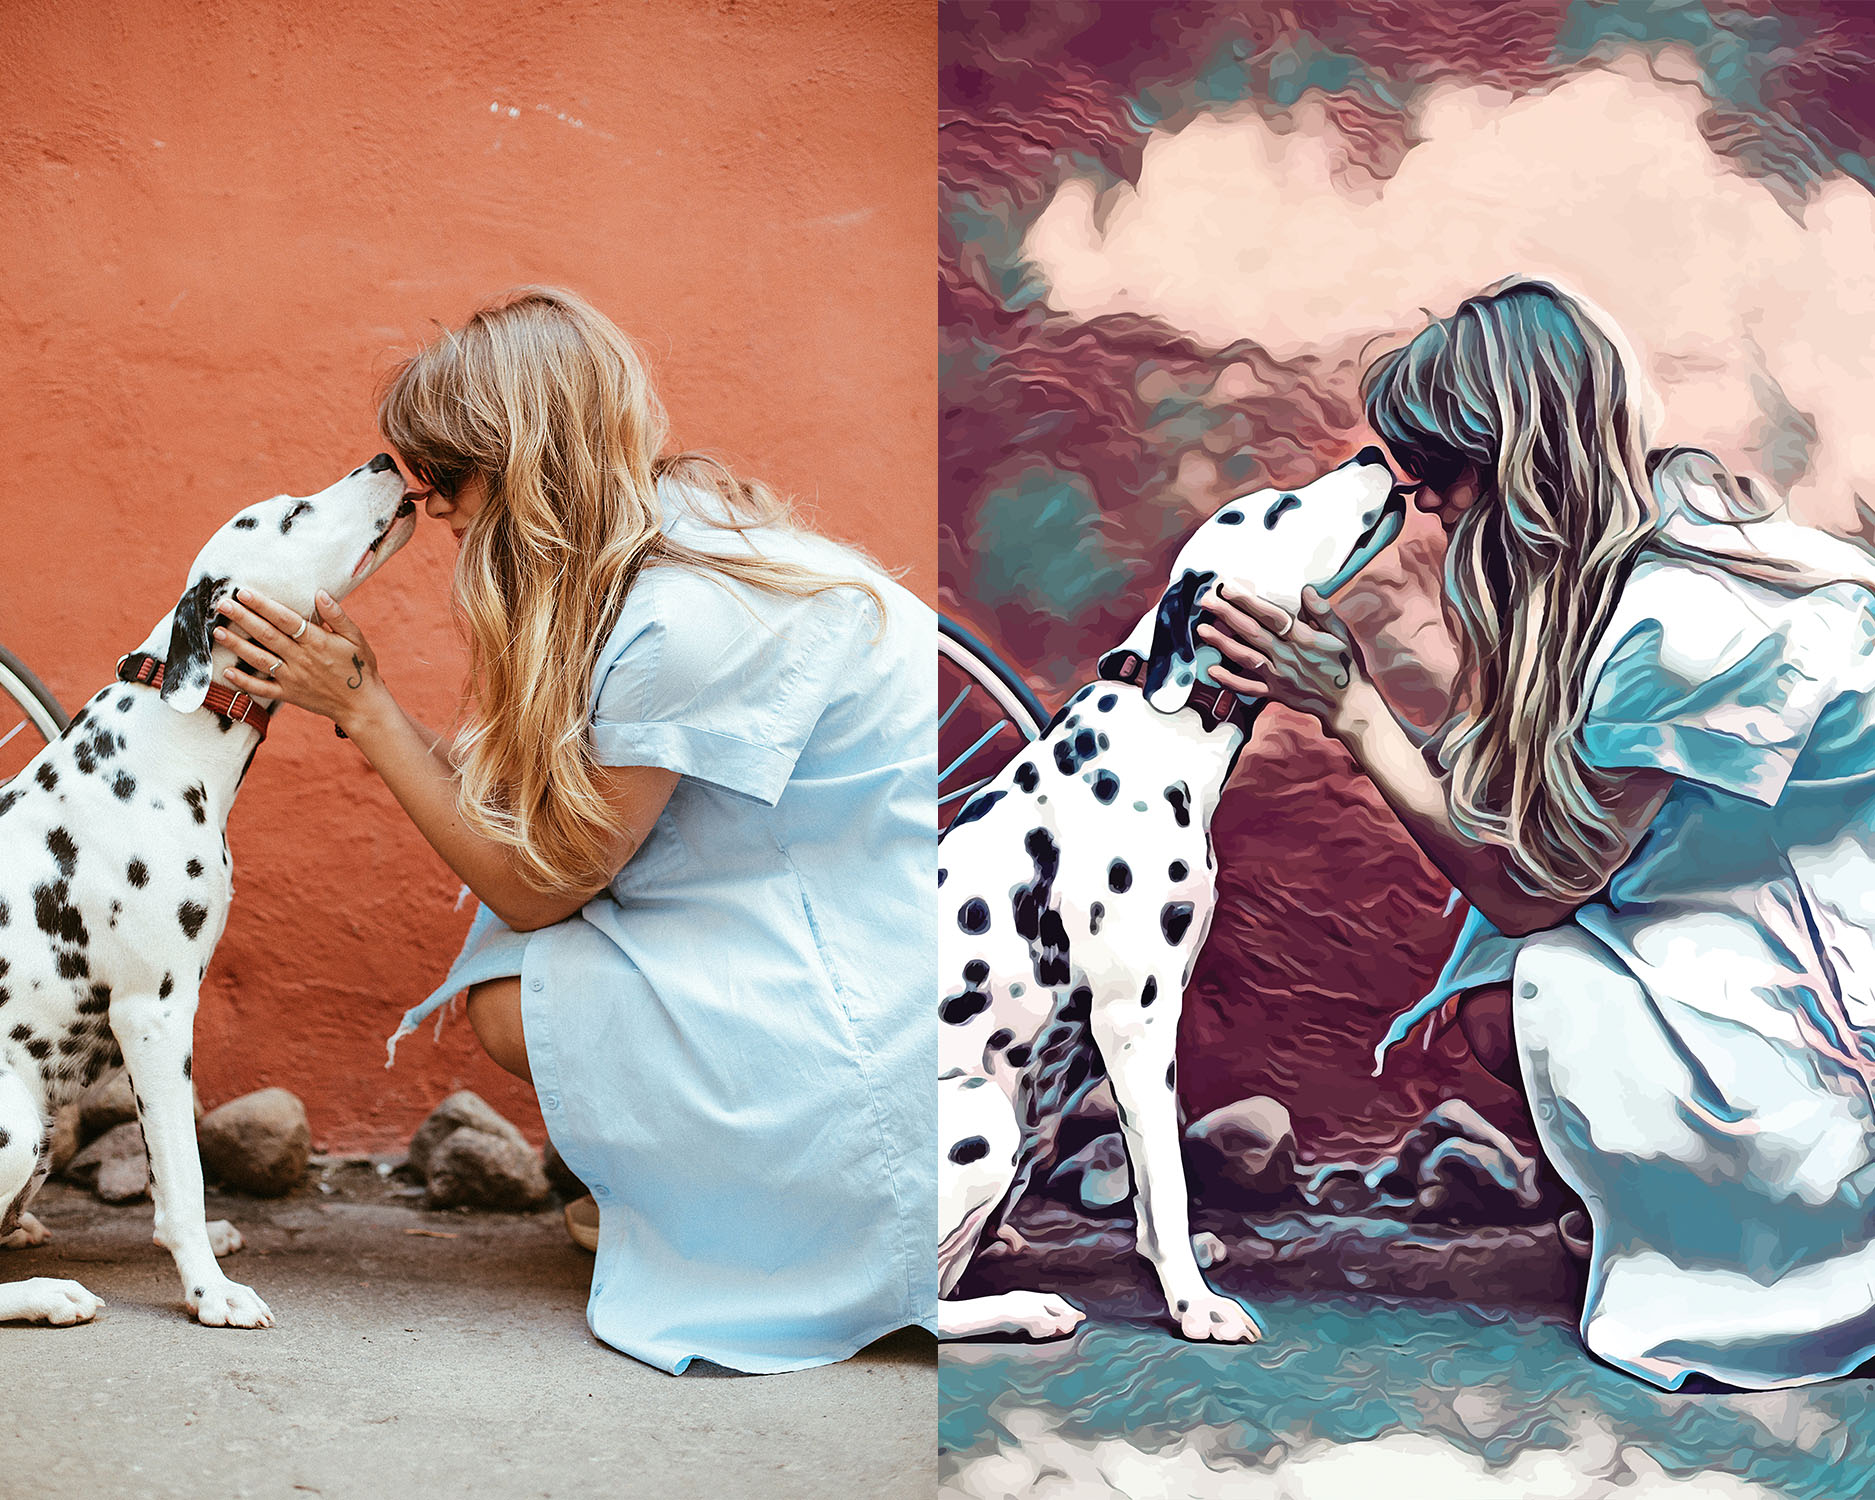 Before and after stylized Image of a Dalmatian licking a woman's face.